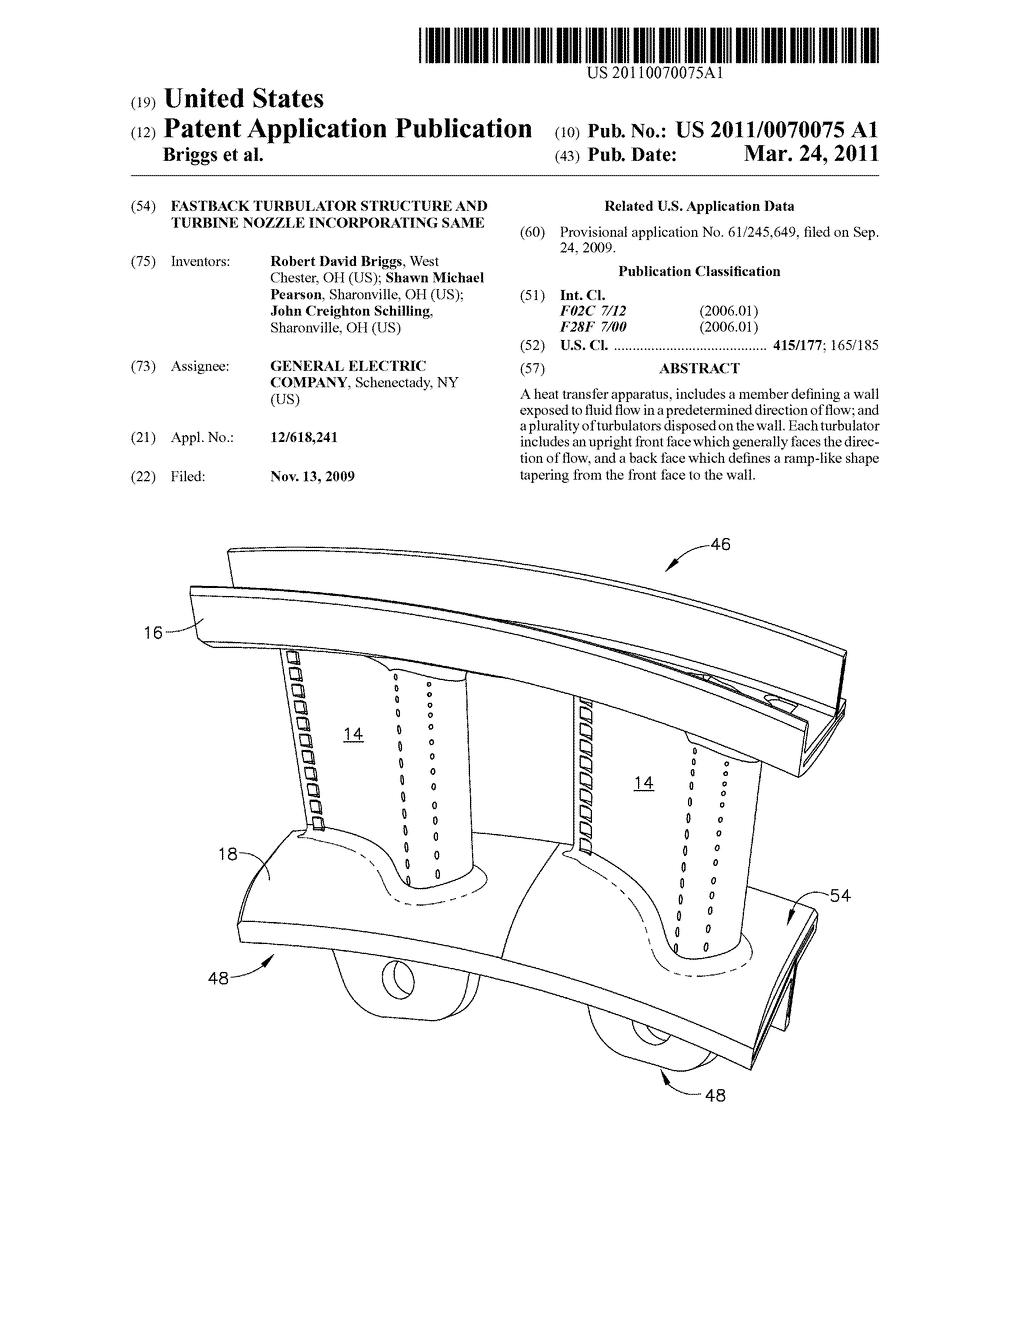 FASTBACK TURBULATOR STRUCTURE AND TURBINE NOZZLE INCORPORATING SAME - diagram, schematic, and image 01